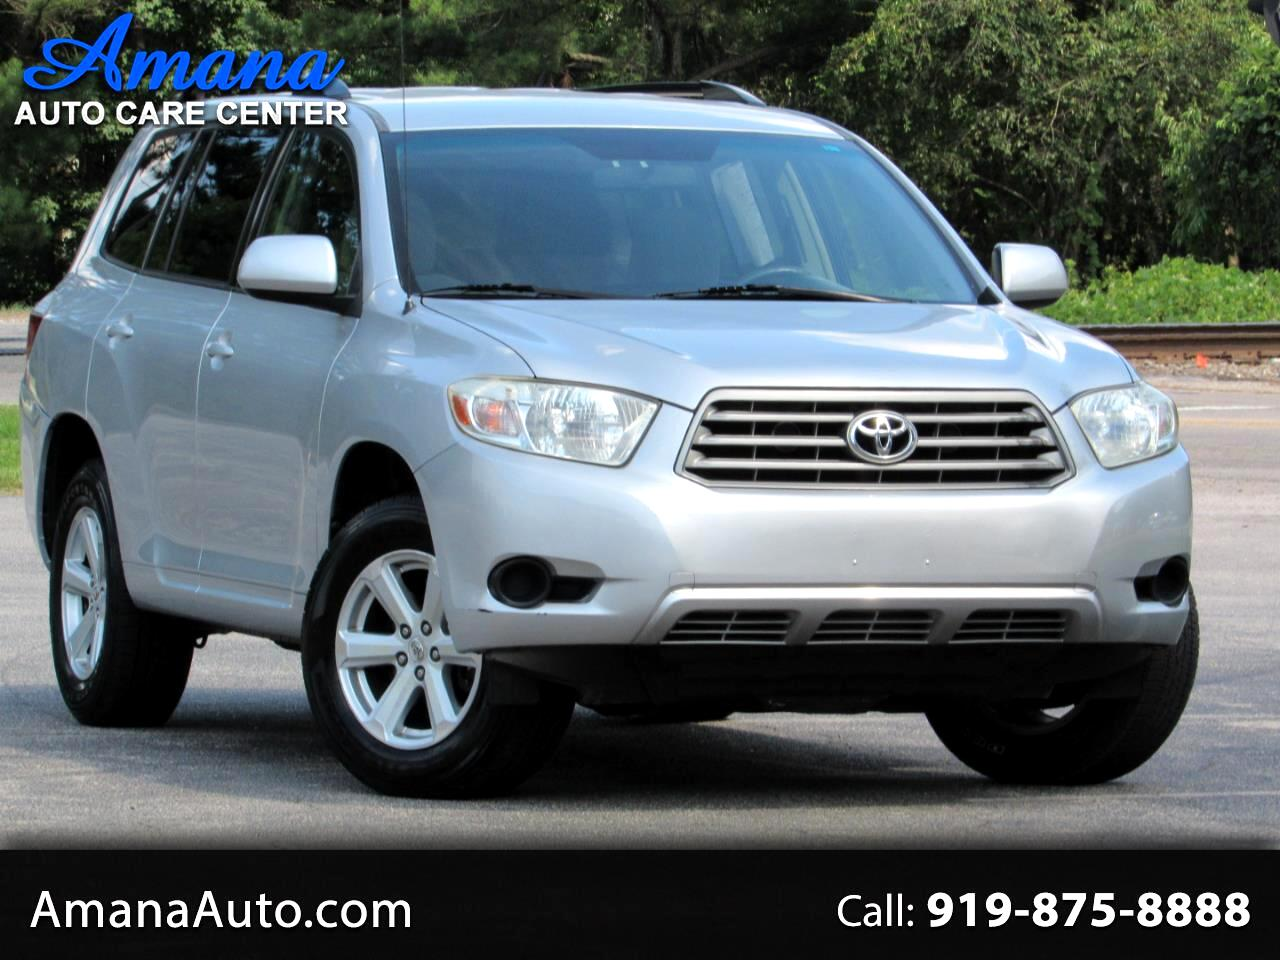 2008 Toyota Highlander FWD 4dr Base (Natl)